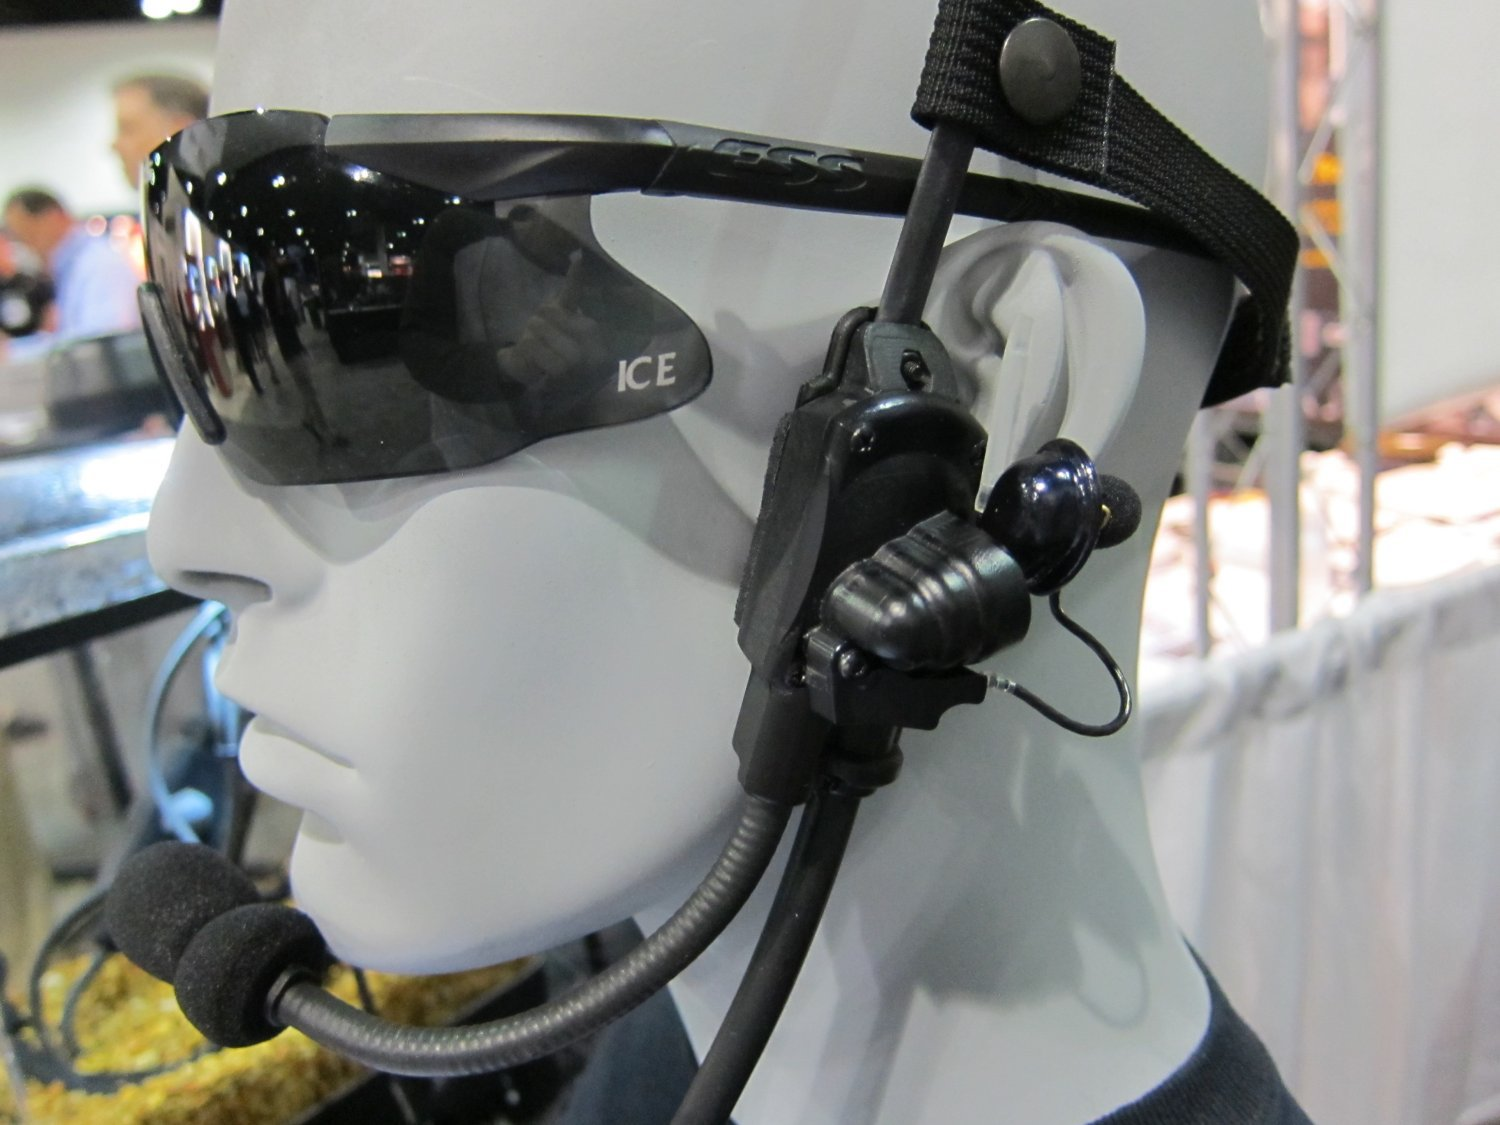 <!--:en-->DR Exclusive Interview!: Atlantic Signal (AS) Introducing The DOMINATOR Waterproof Bone-Conduction/Hearing Pro Military Tactical Communications Headset System at SOFIC 2011: Ultimate Custom-Built Tactical Comms Headset for U.S. Military Special Operations Forces (SOF) Assaulters/Operators (Photos!)<!--:-->